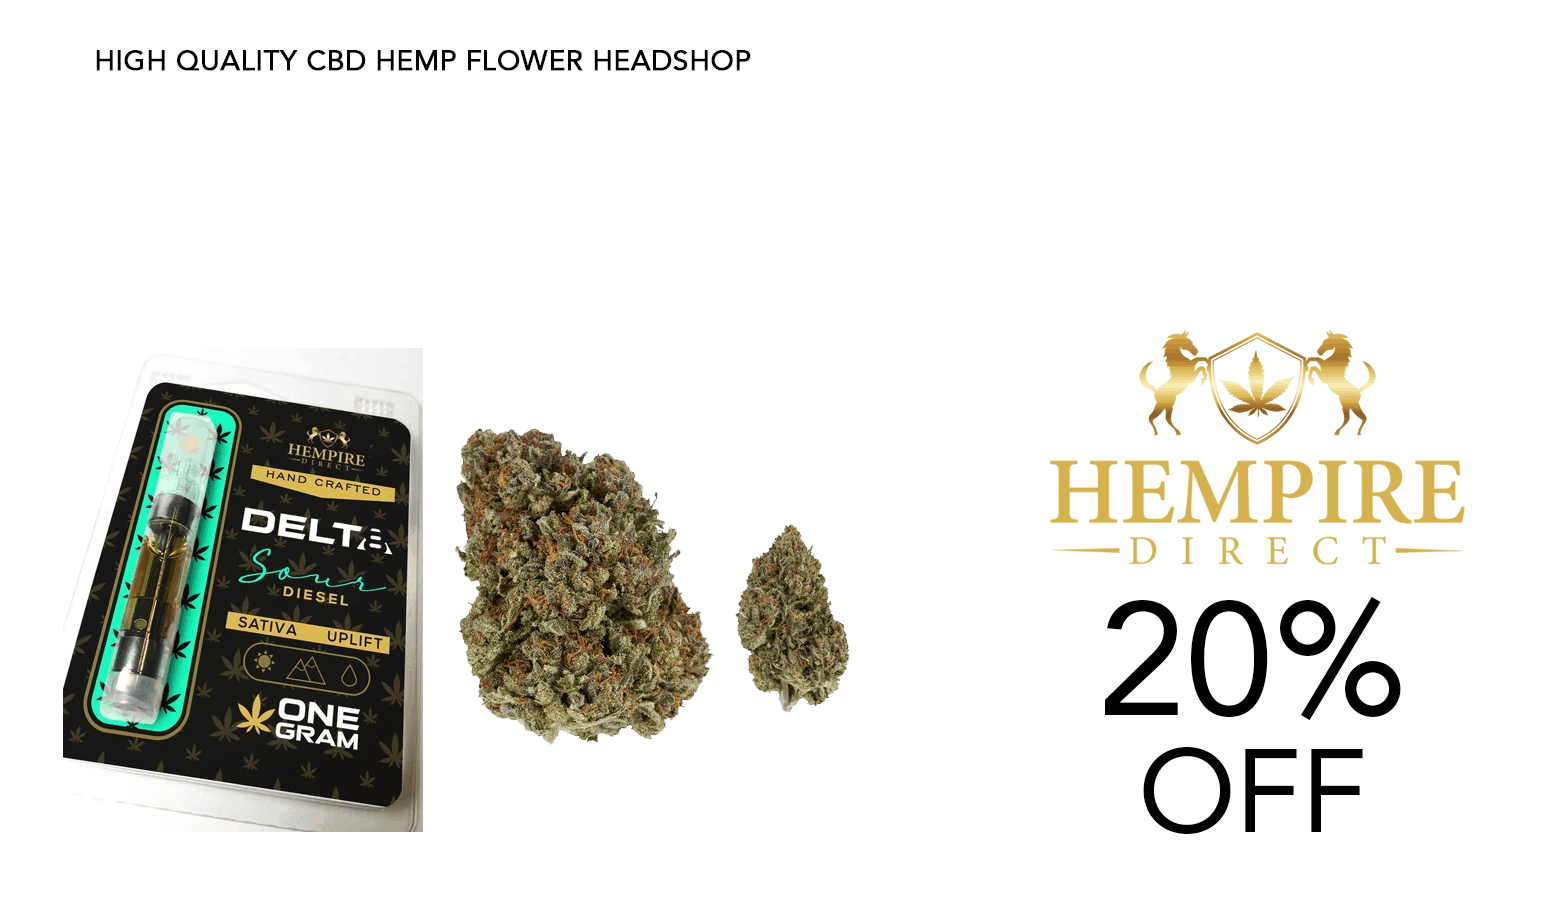 Hempire Direct CBD Coupon Code 20 Percent Off Discount